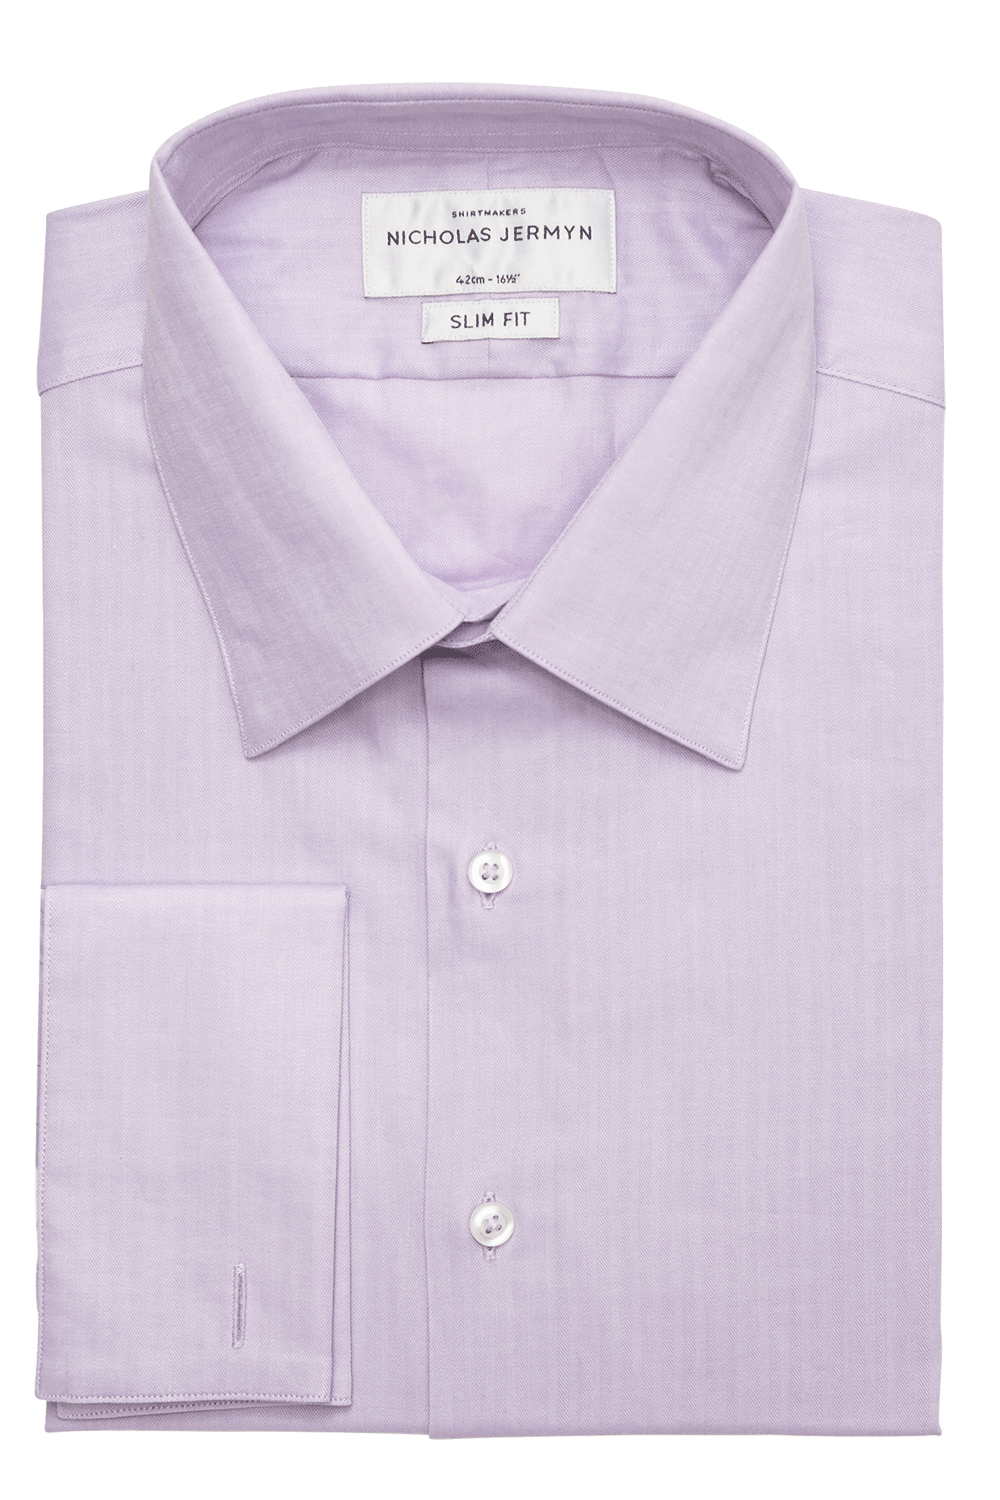 Bauer Herringbone Slim Fit Double Cuff Men's Business Shirt